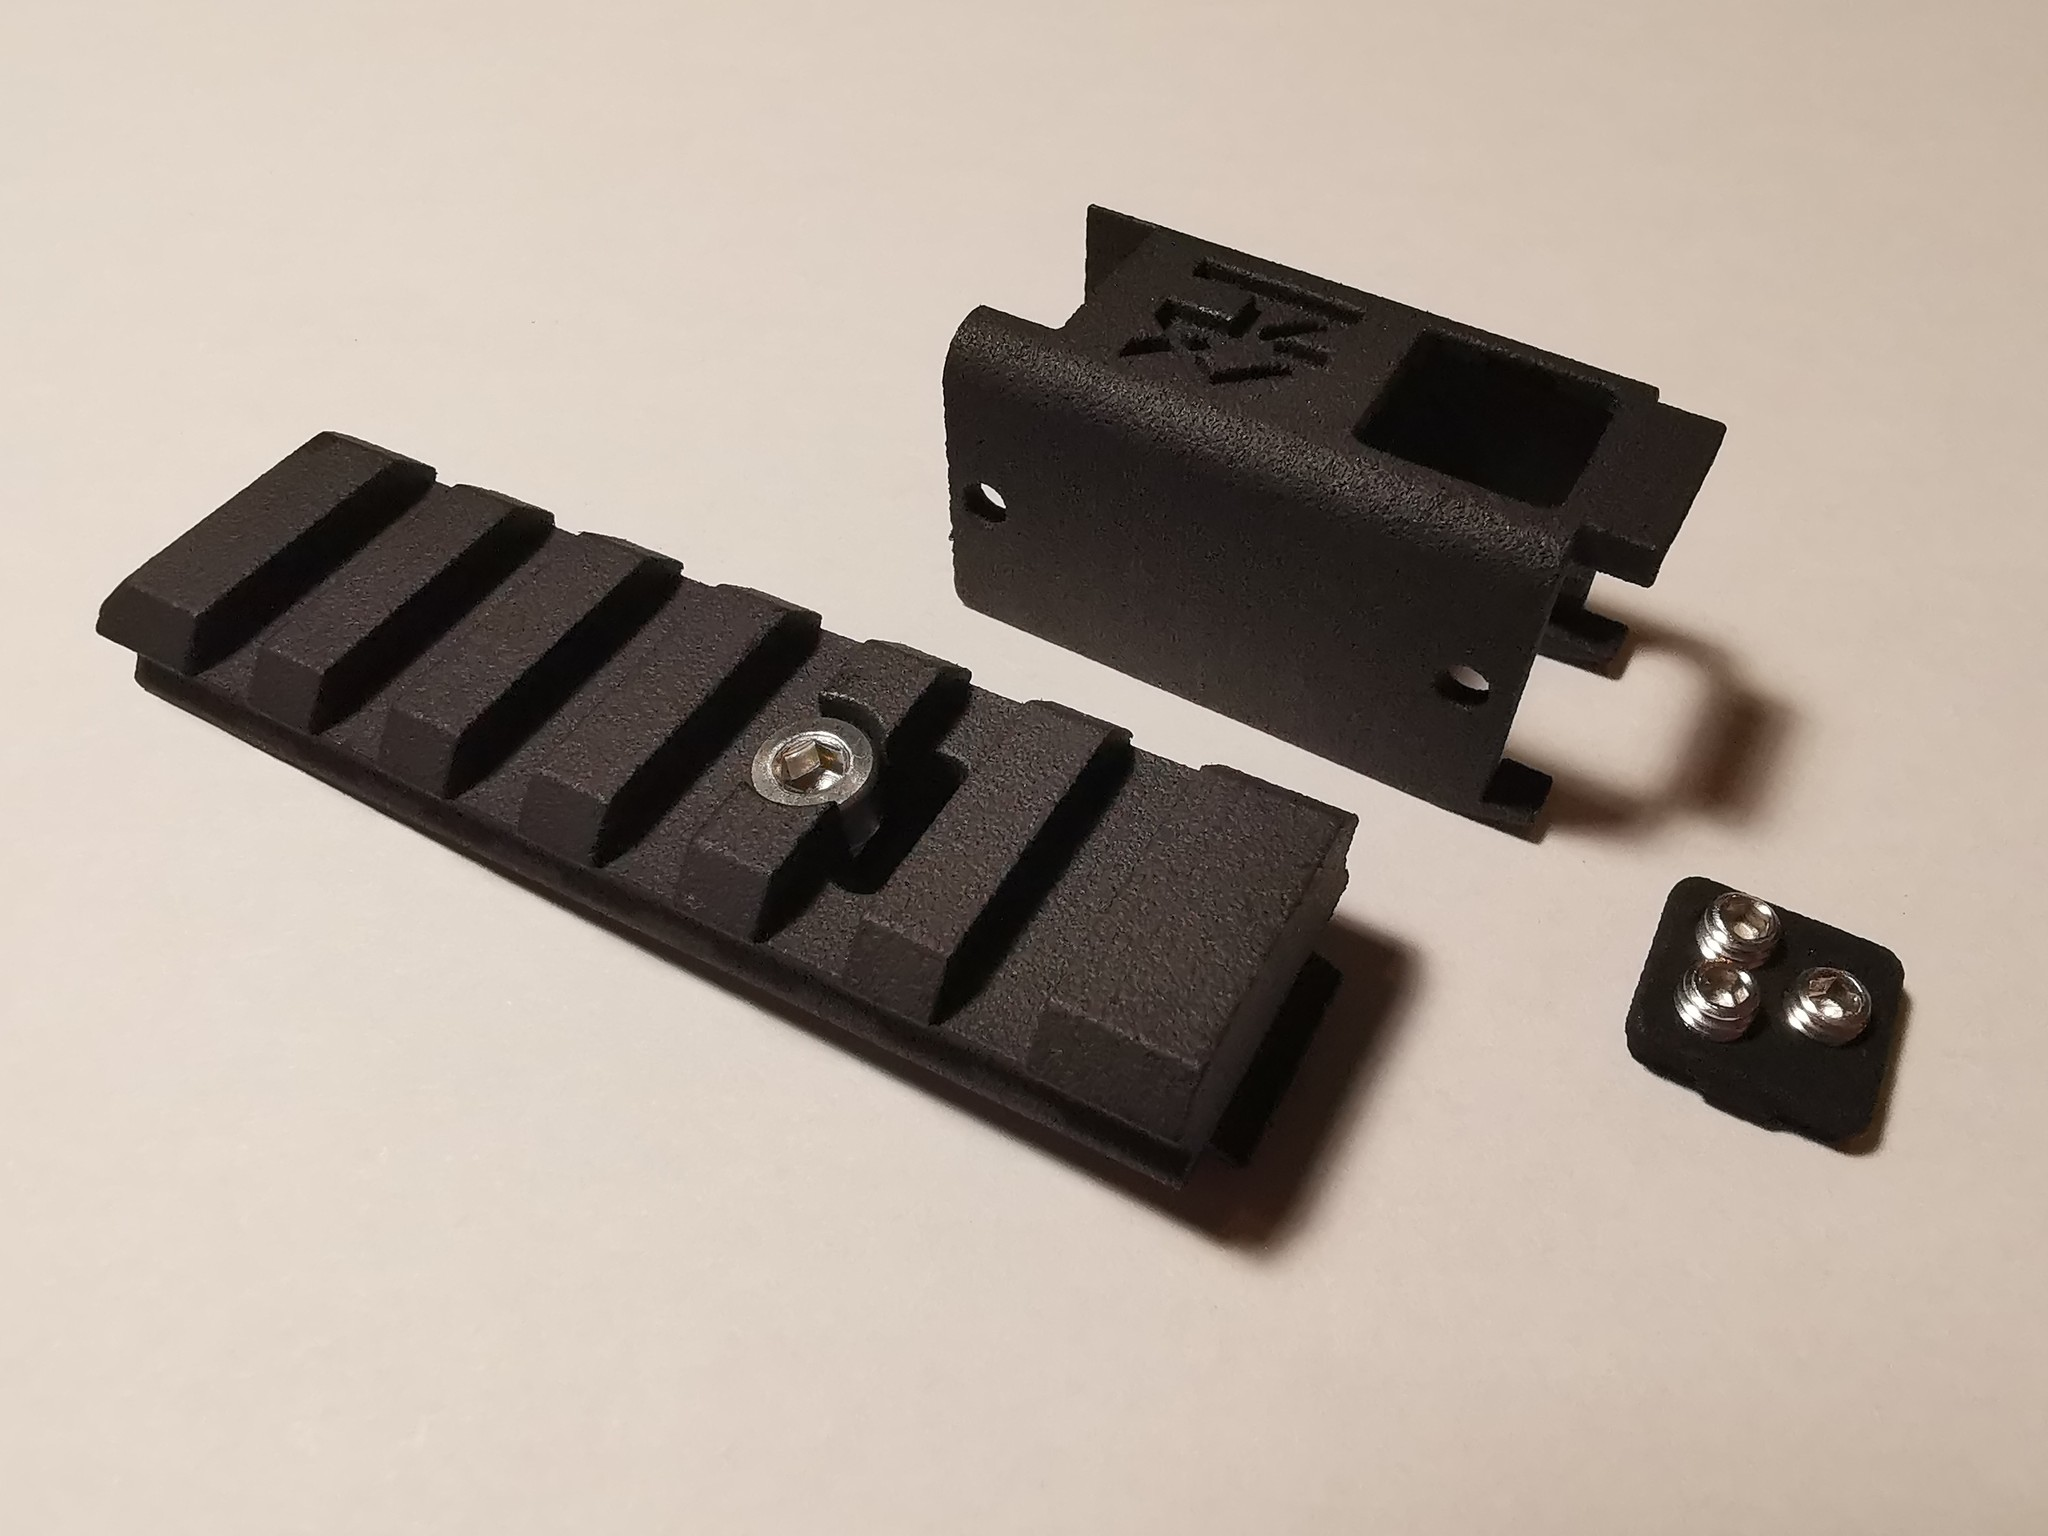 Airsoft Tokyo Marui Mk23 Dust Cover enhanced with hop up adjuster